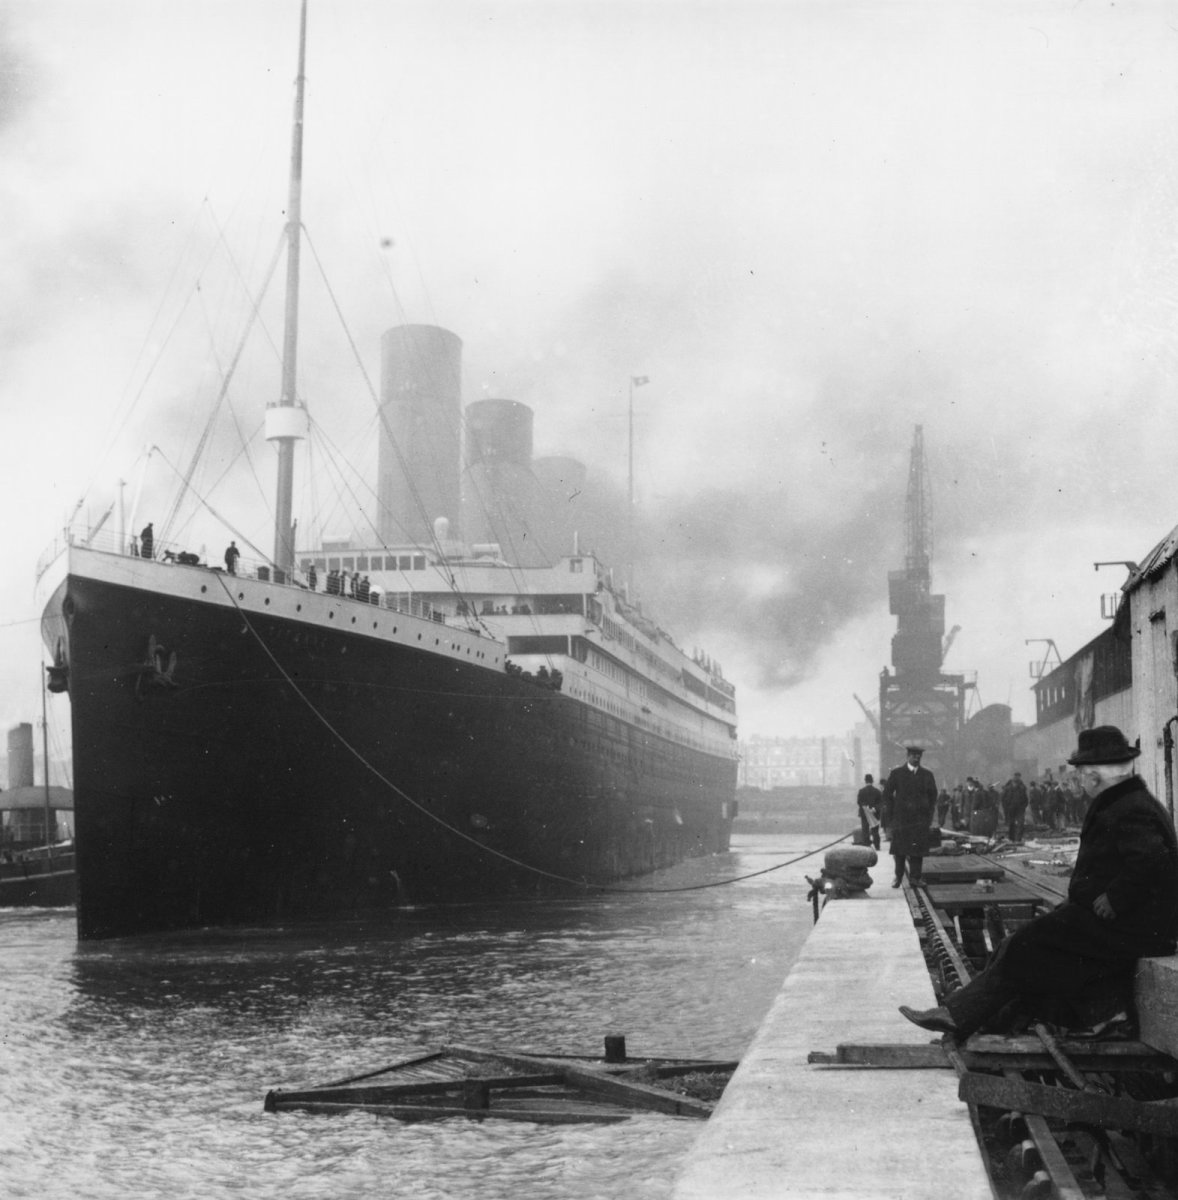 The Titanic at her dock, 1912